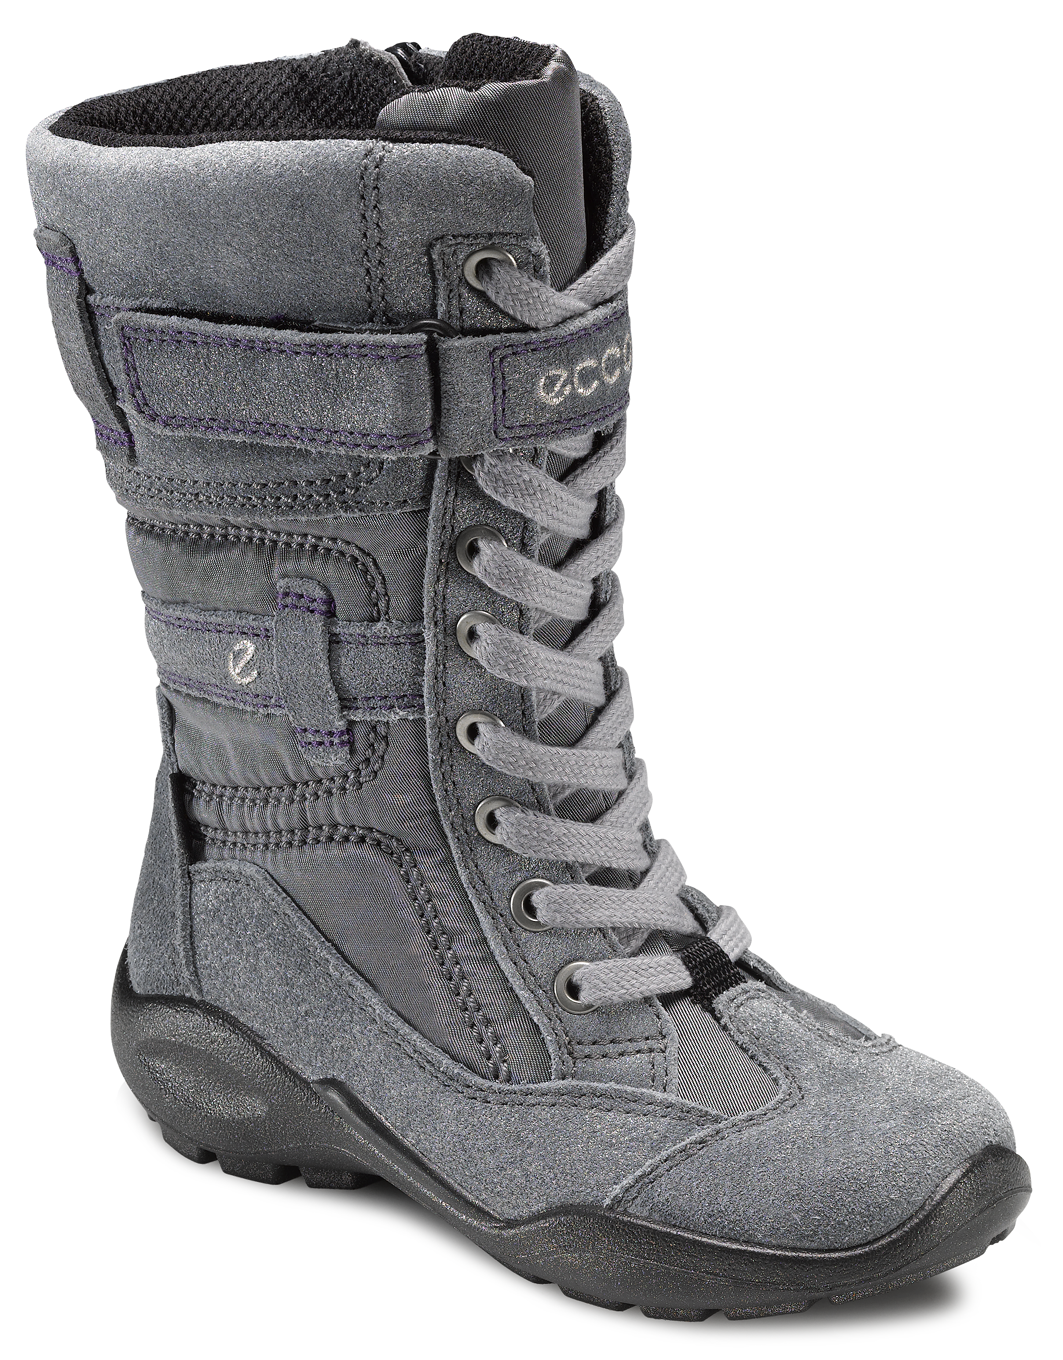 ECCO Girls WINTER QUEEN